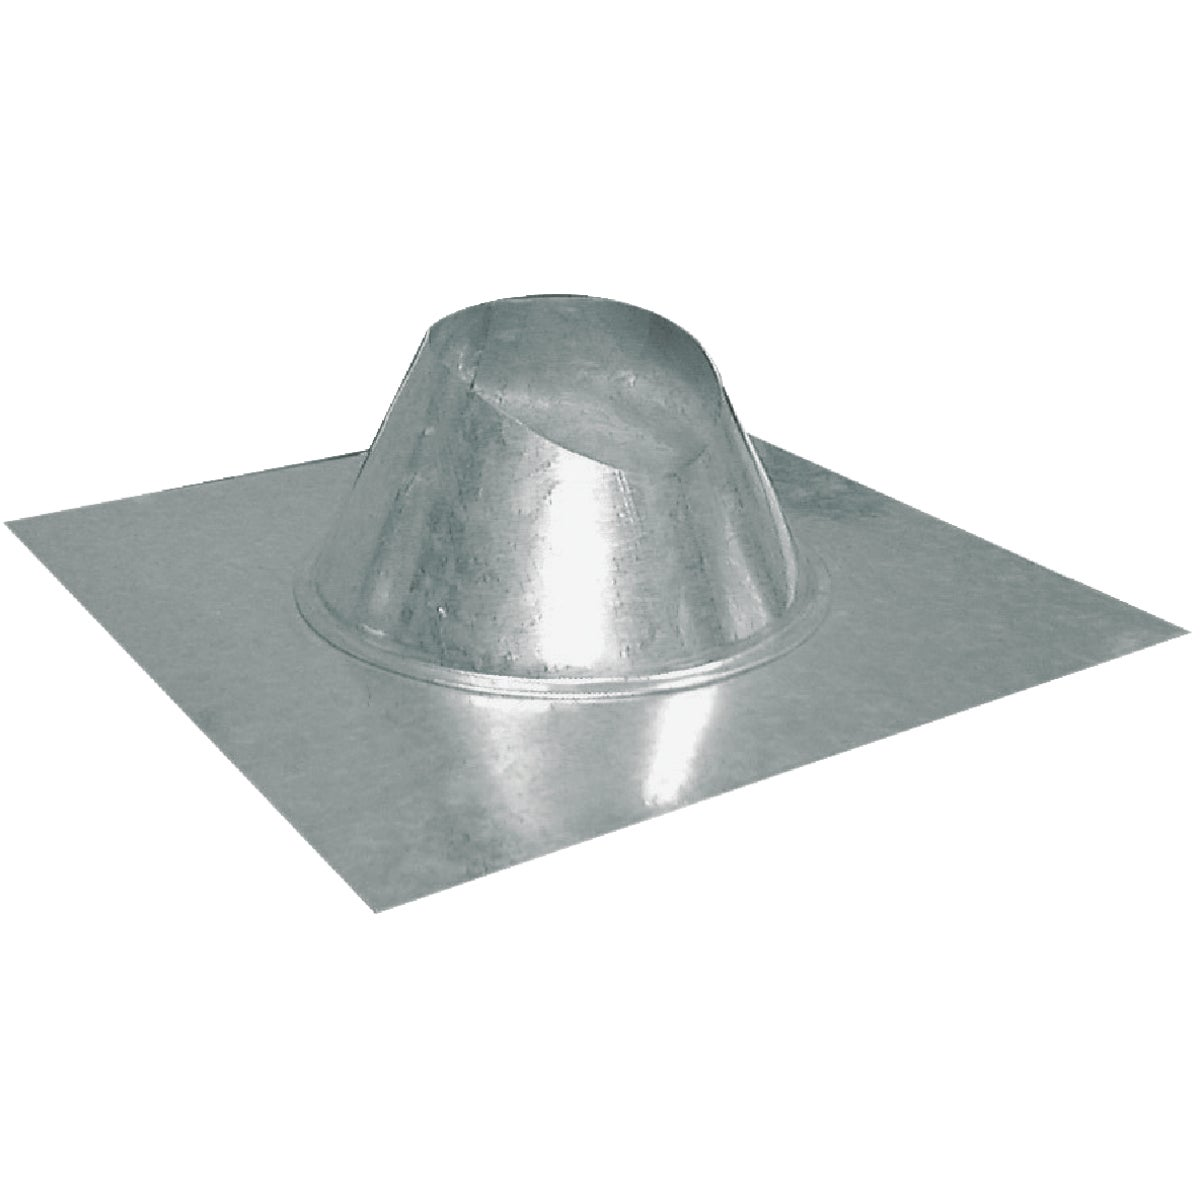 "4"" GALV ROOF FLASHING - GV1383 by Imperial Mfg Group"